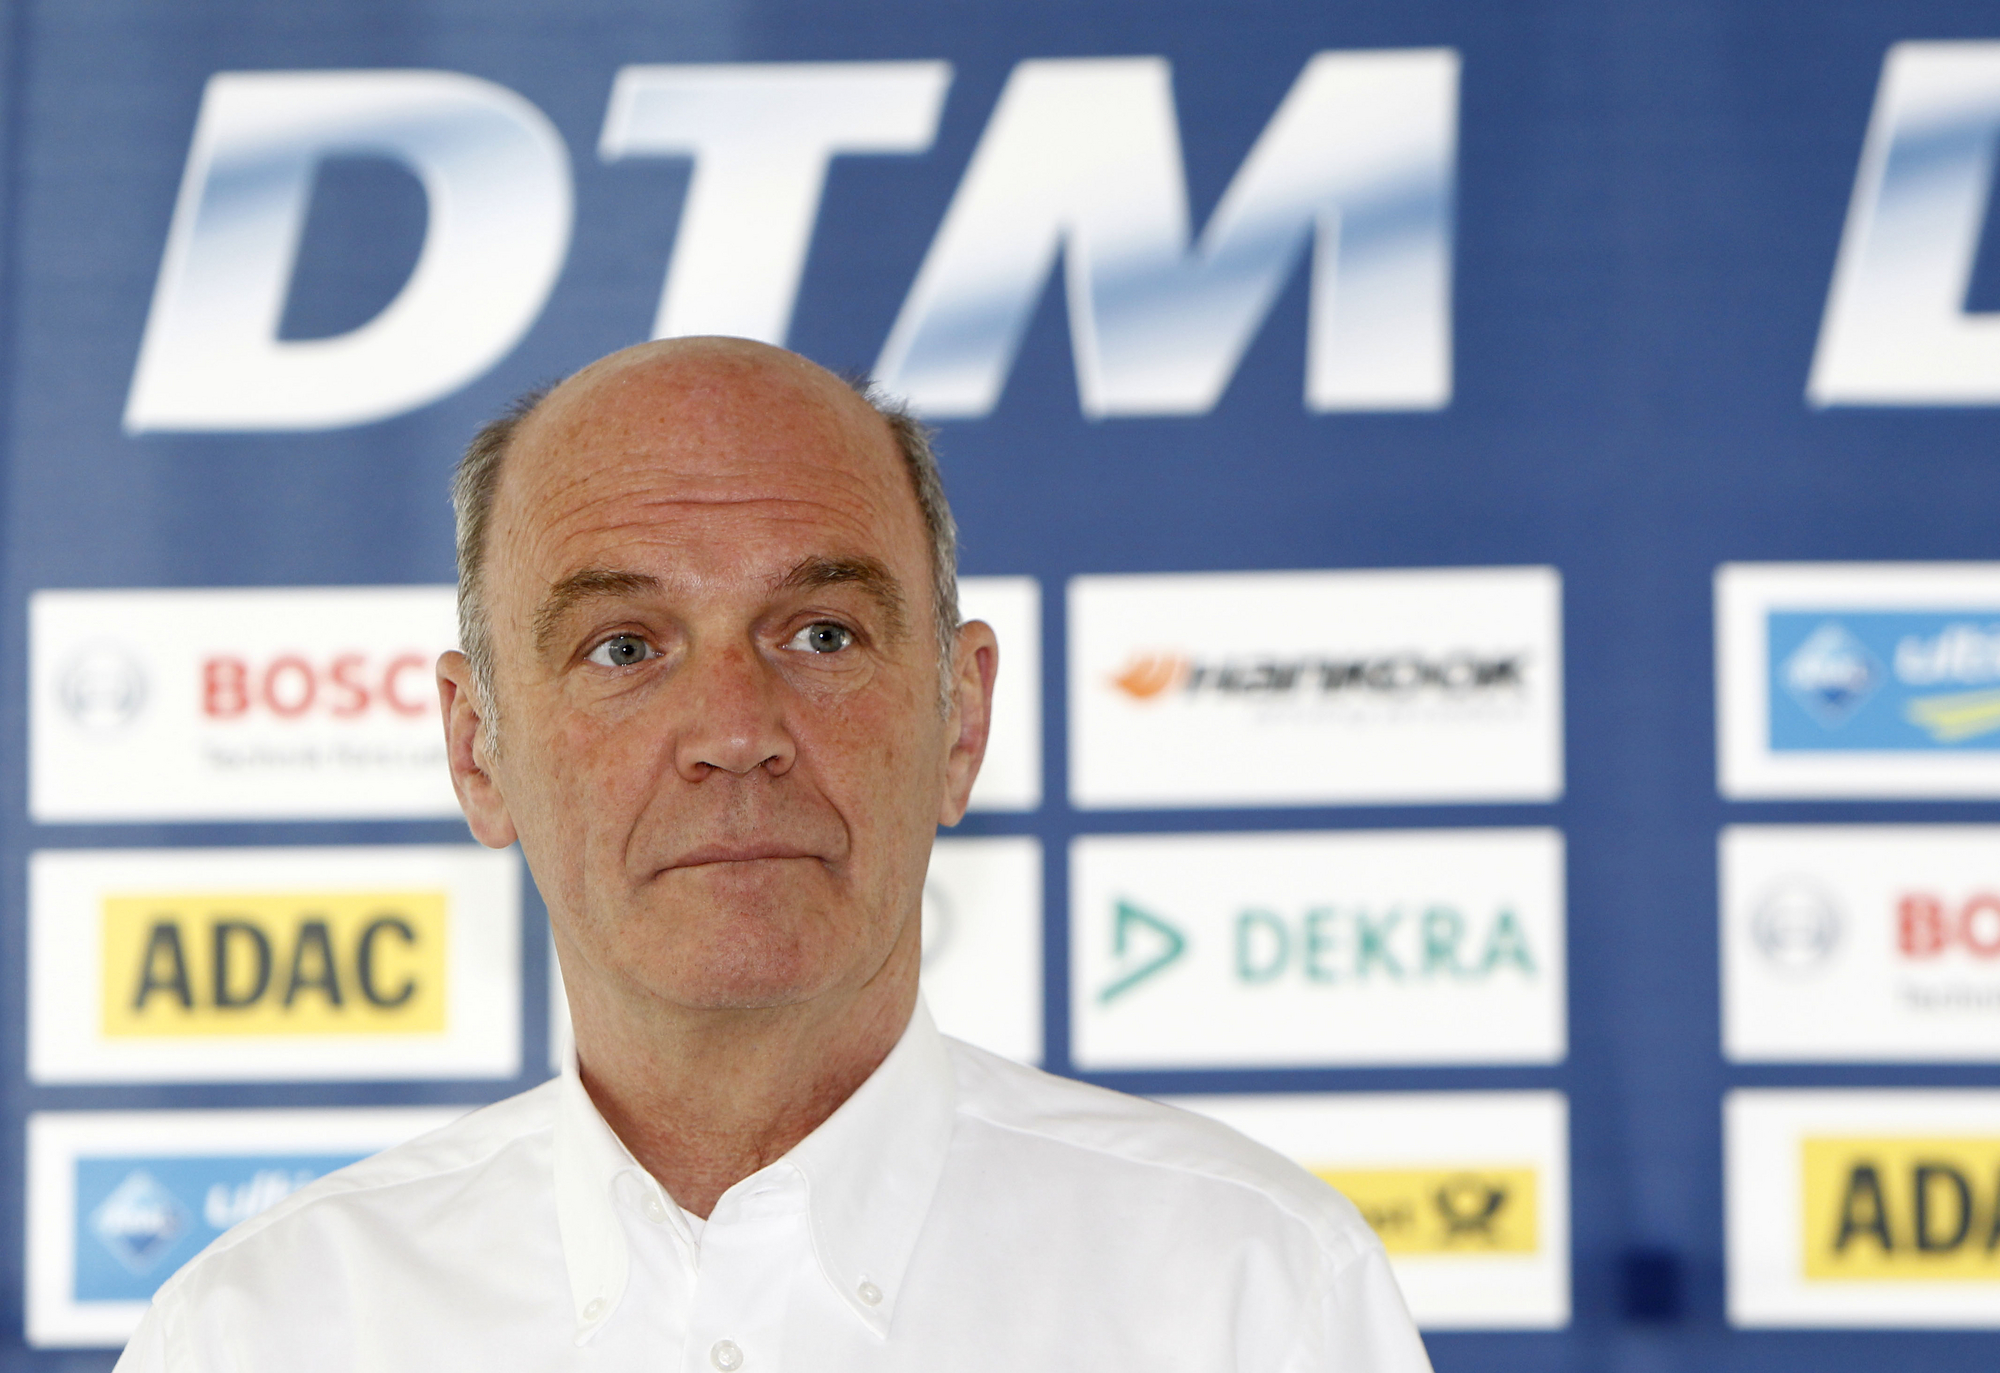 Dr. Ullrich says that the sport might opt for hybrids in the future